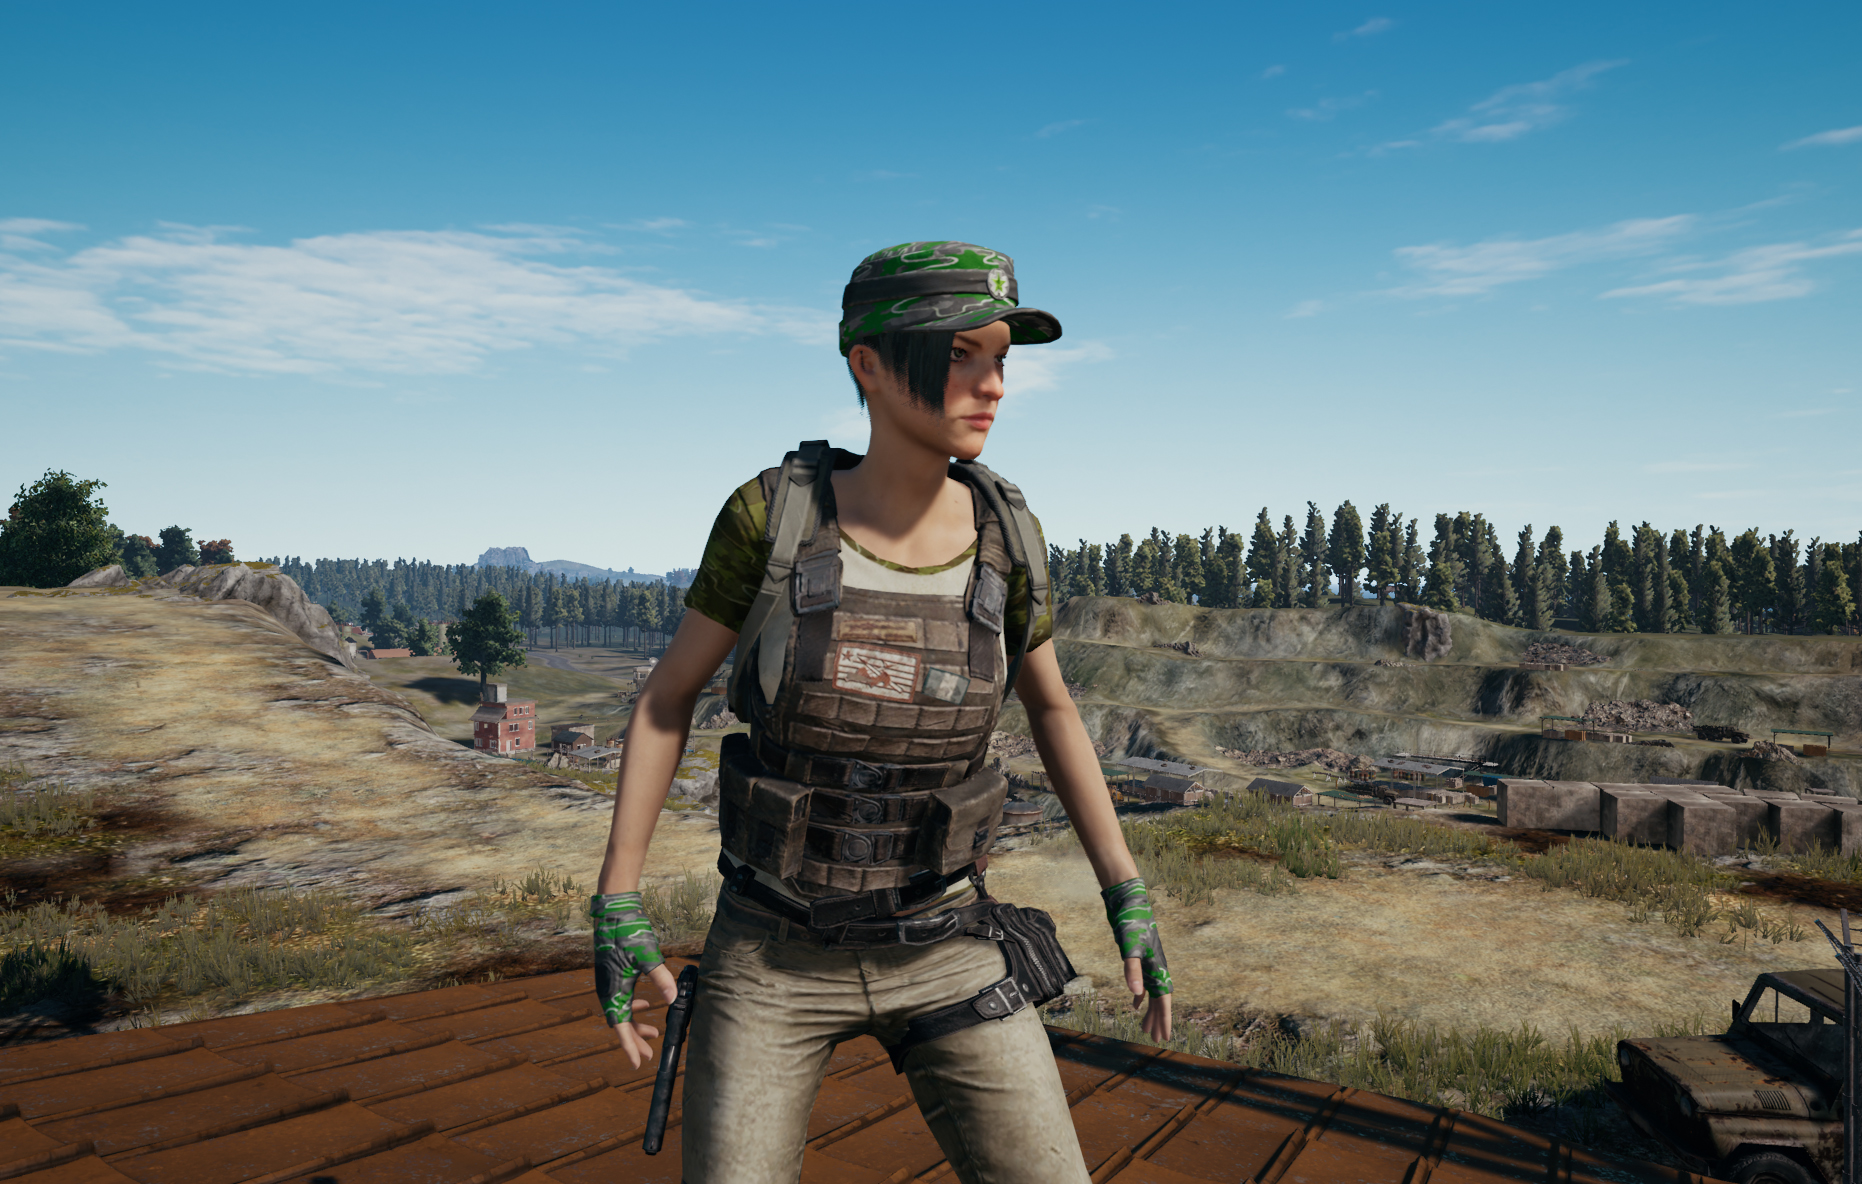 Tweaked Pubg Mobile To Look Like The Pc Version Pubgmobile: Playing PUBG On Xbox One Is Far From Fun, But It Doesn't